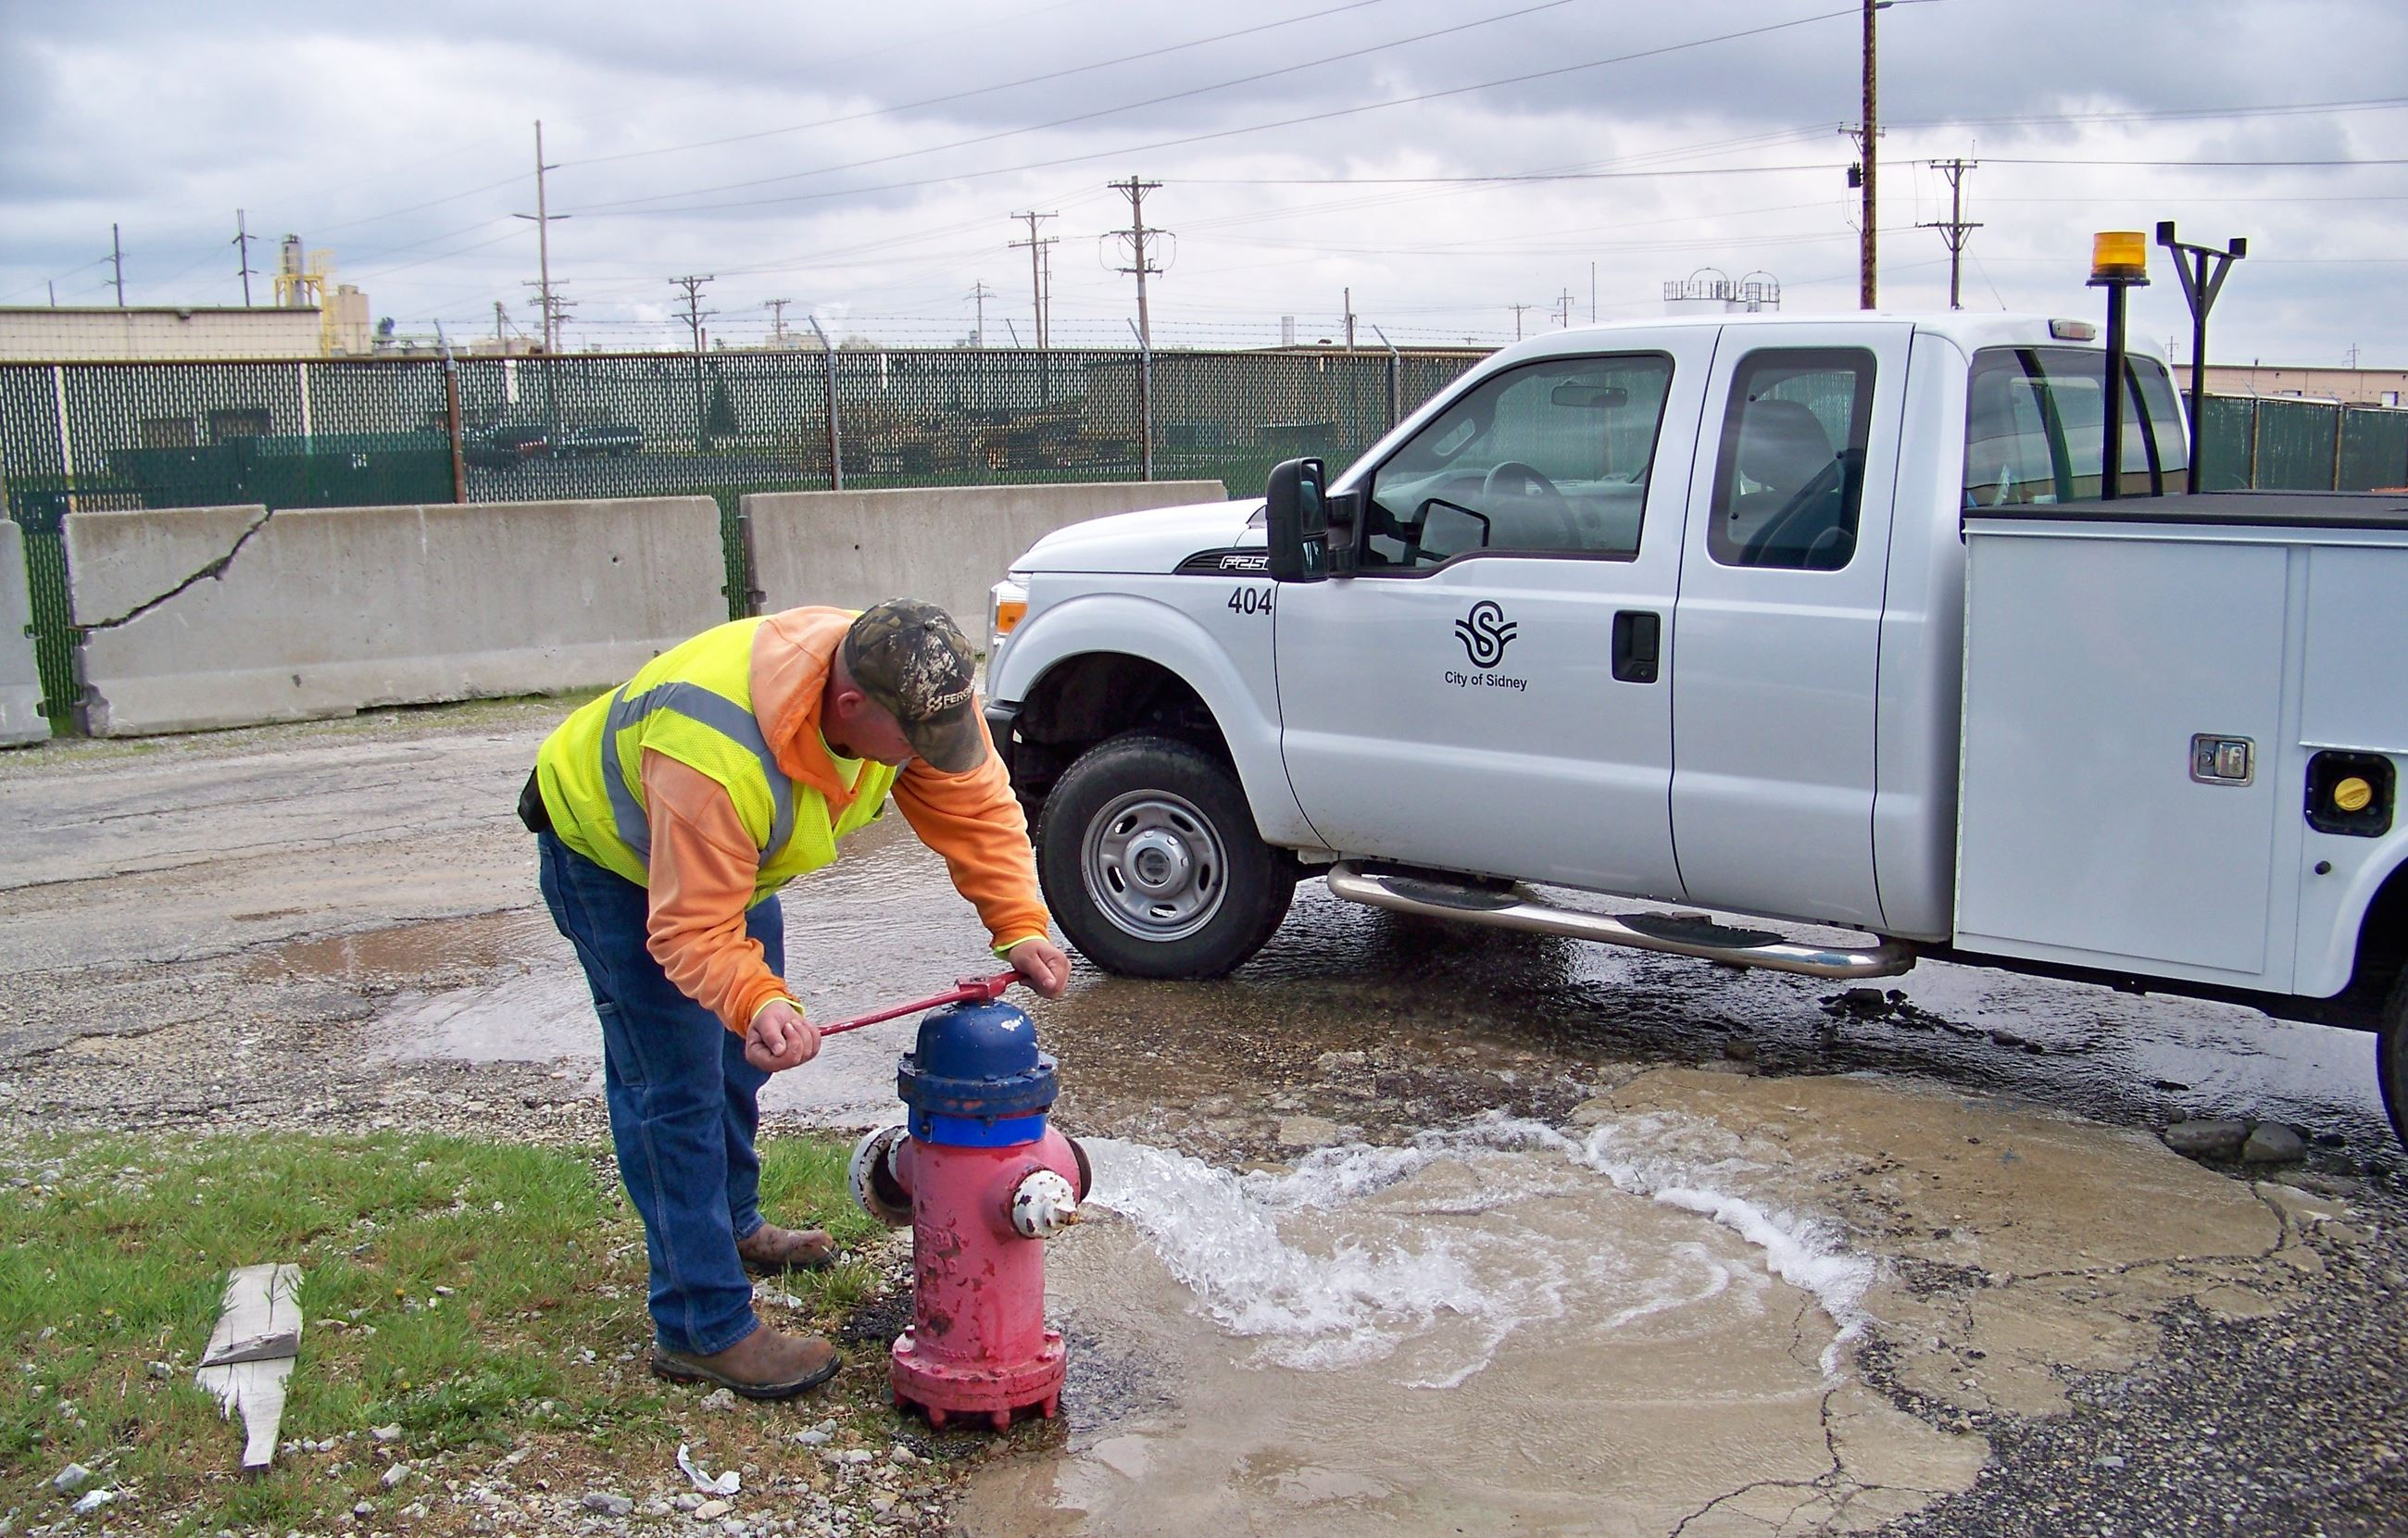 City of Sidney employee testing fire hydrant